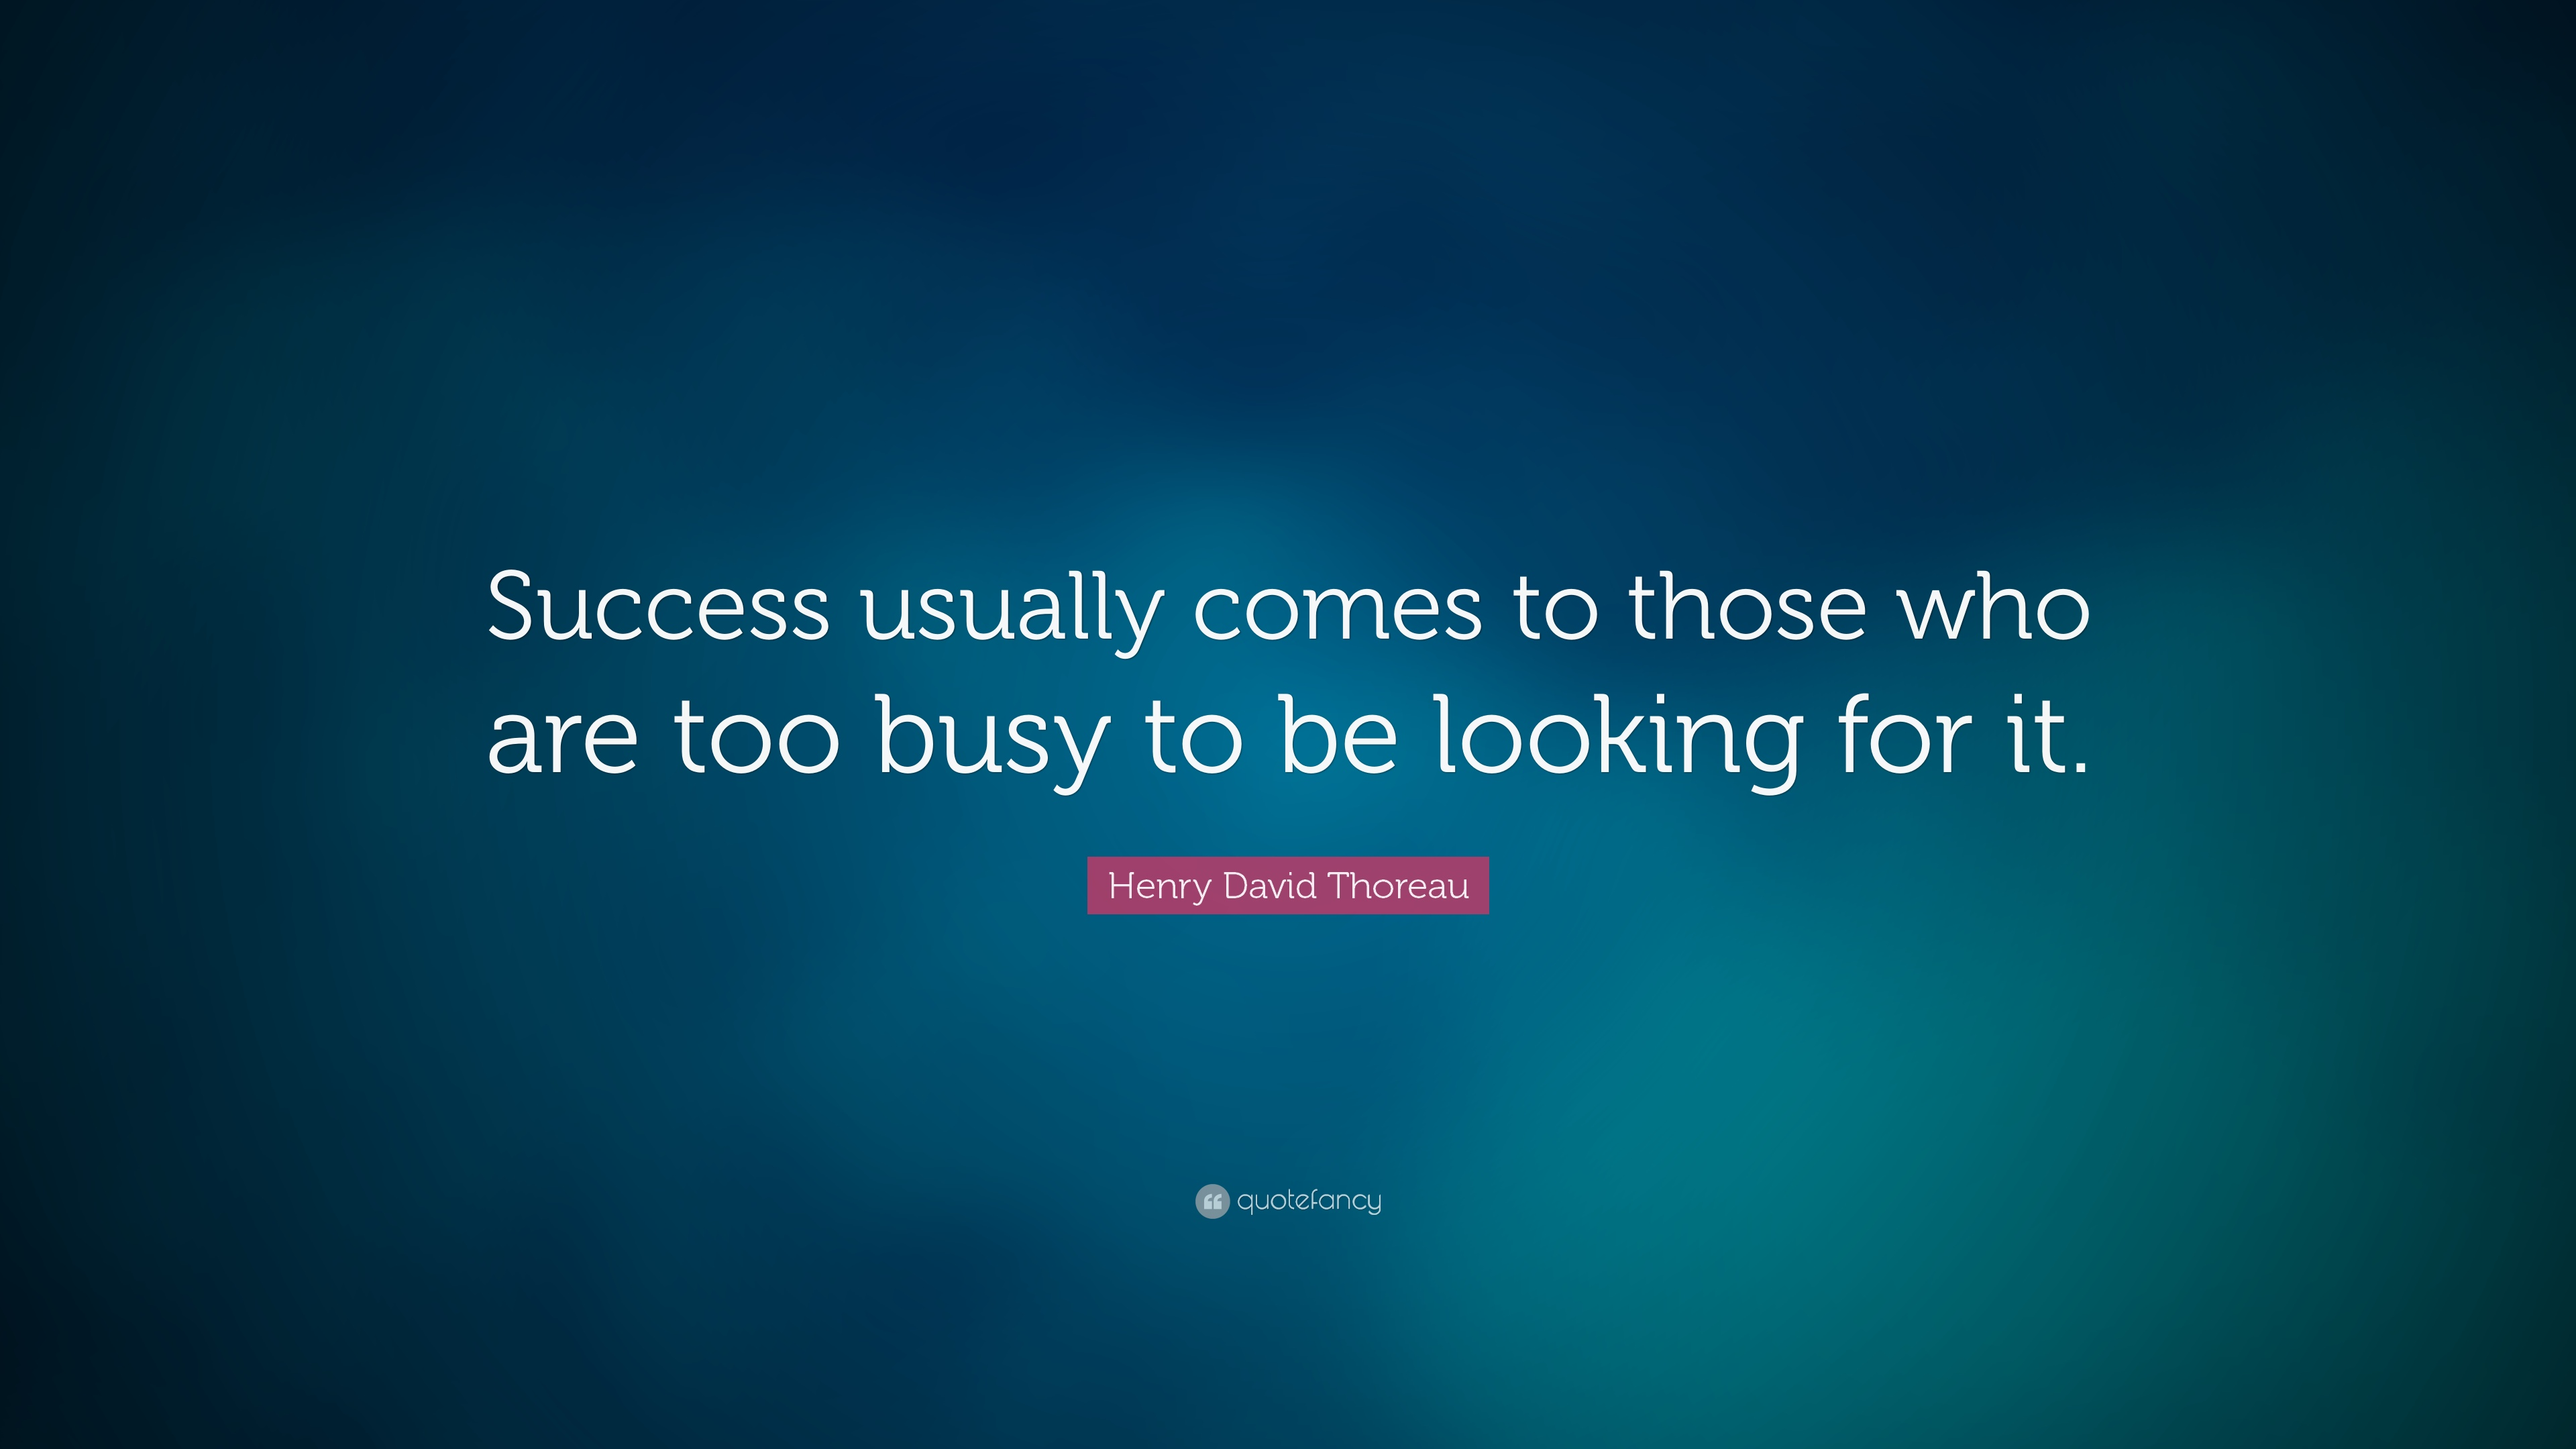 Why Is Hard Work Necessary To Be Successful?